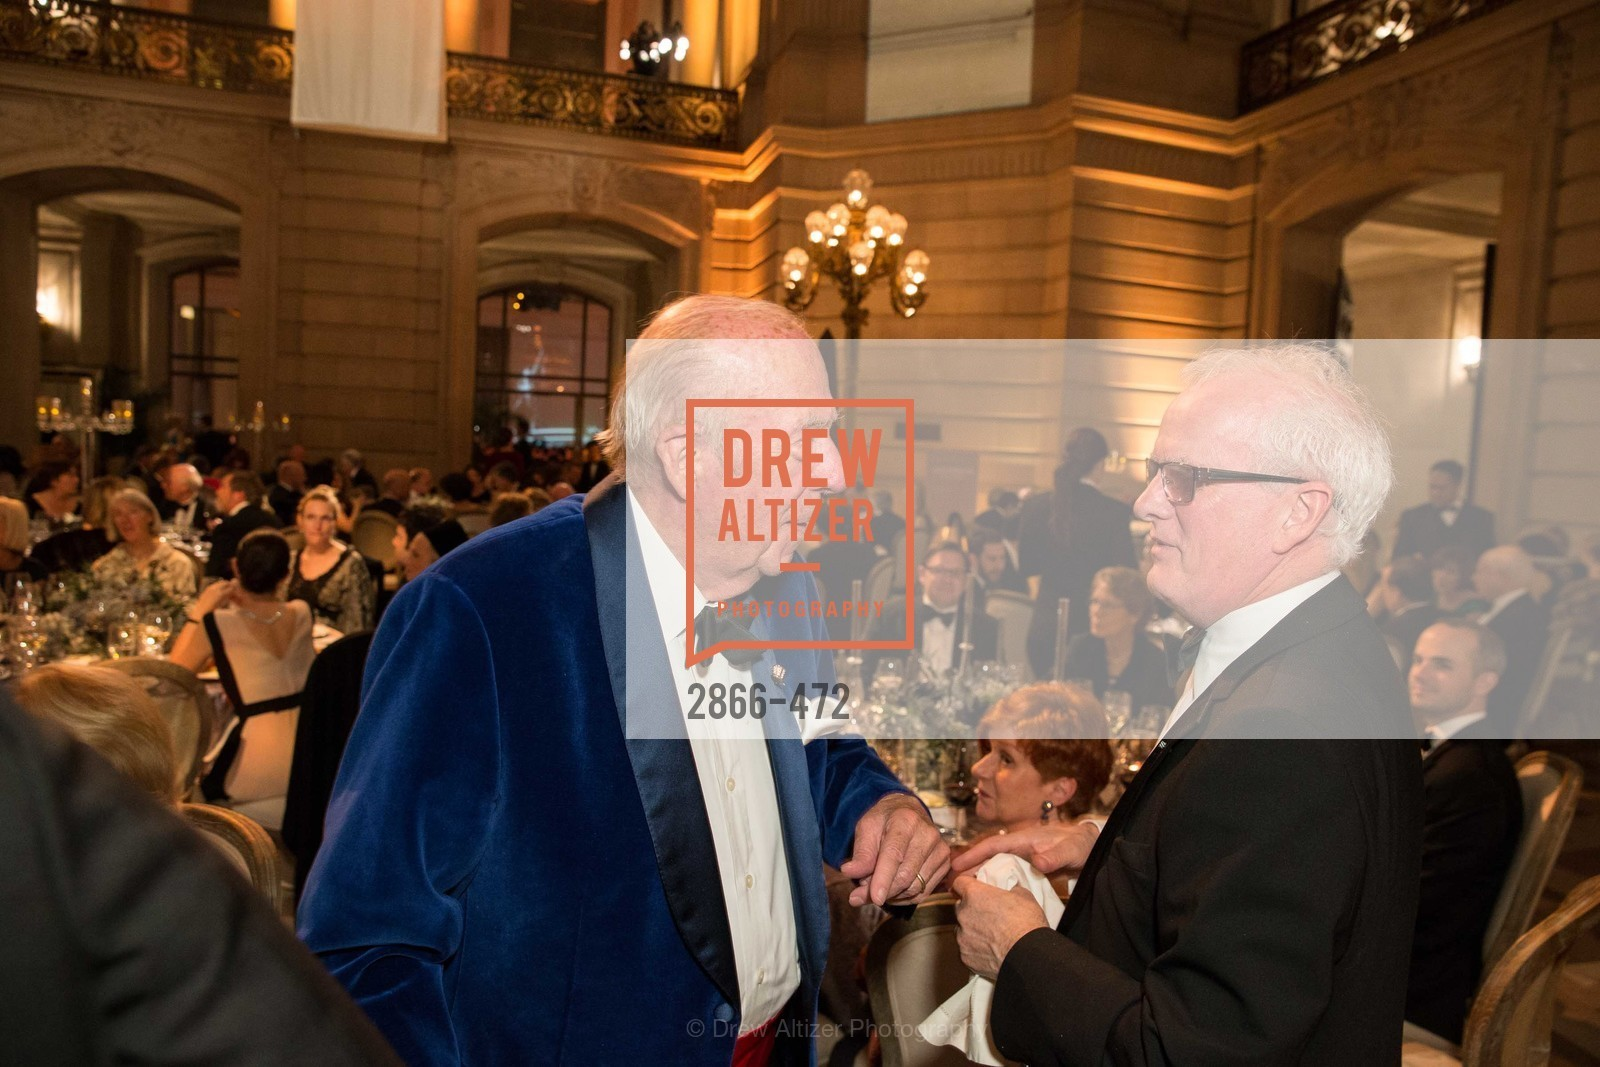 George Shultz, Helgi Tomasson, SAN FRANCISCO BALLET Opening Night Gala: PHENOMENAL - Intermission & Dinner, US. SF City Hall, January 22nd, 2014